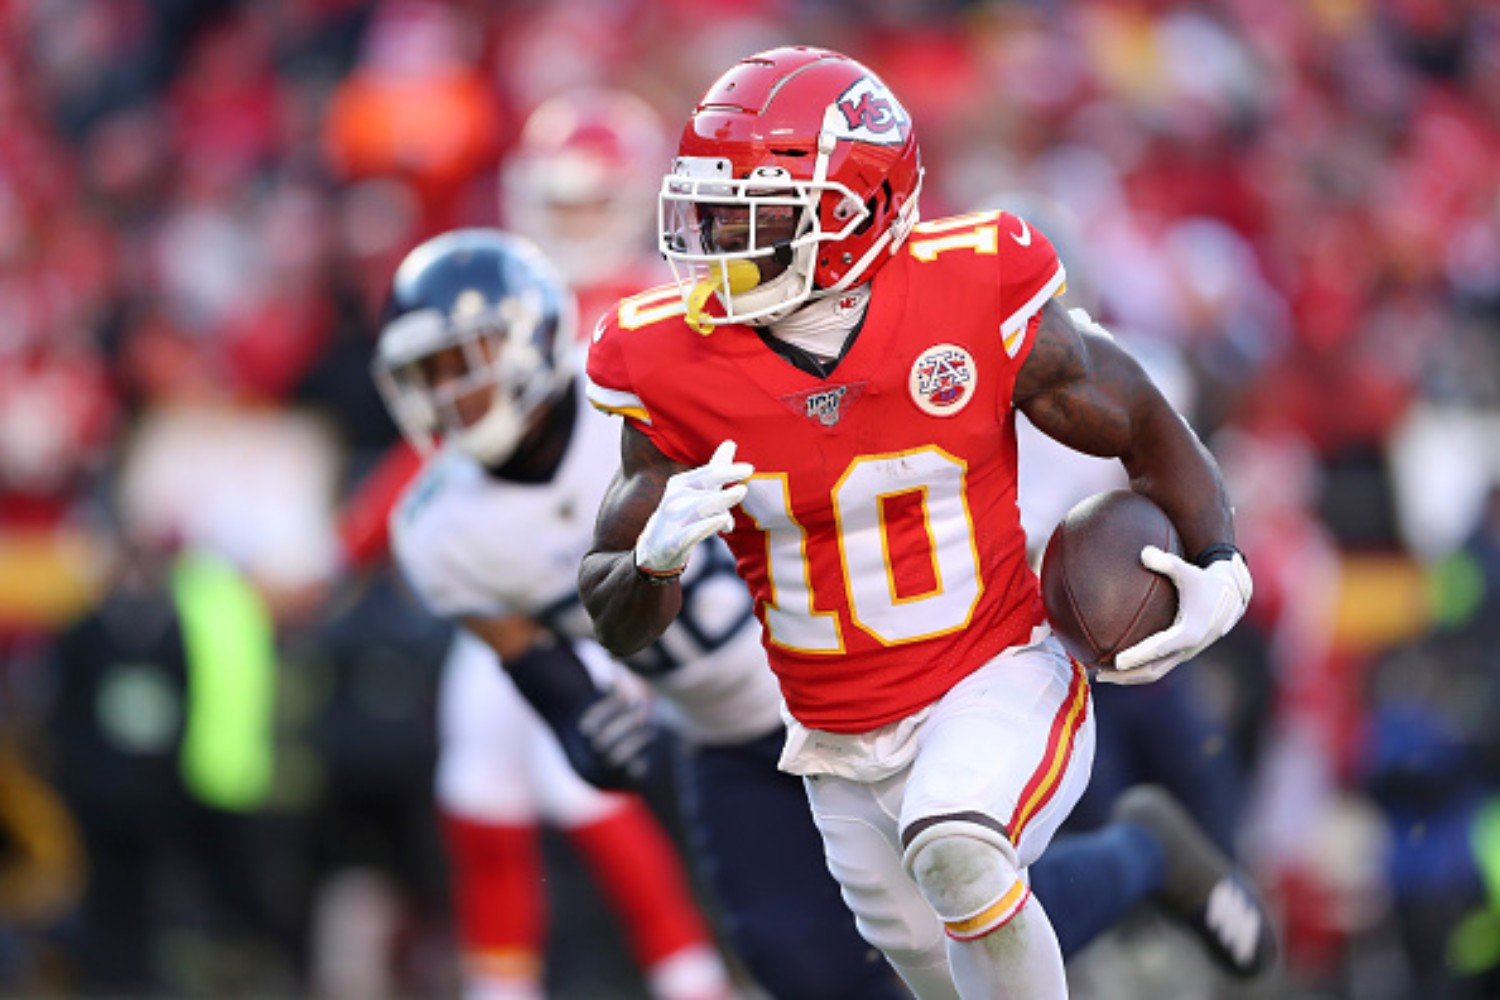 Tyreek Hill has battled through adversity to become an NFL champion